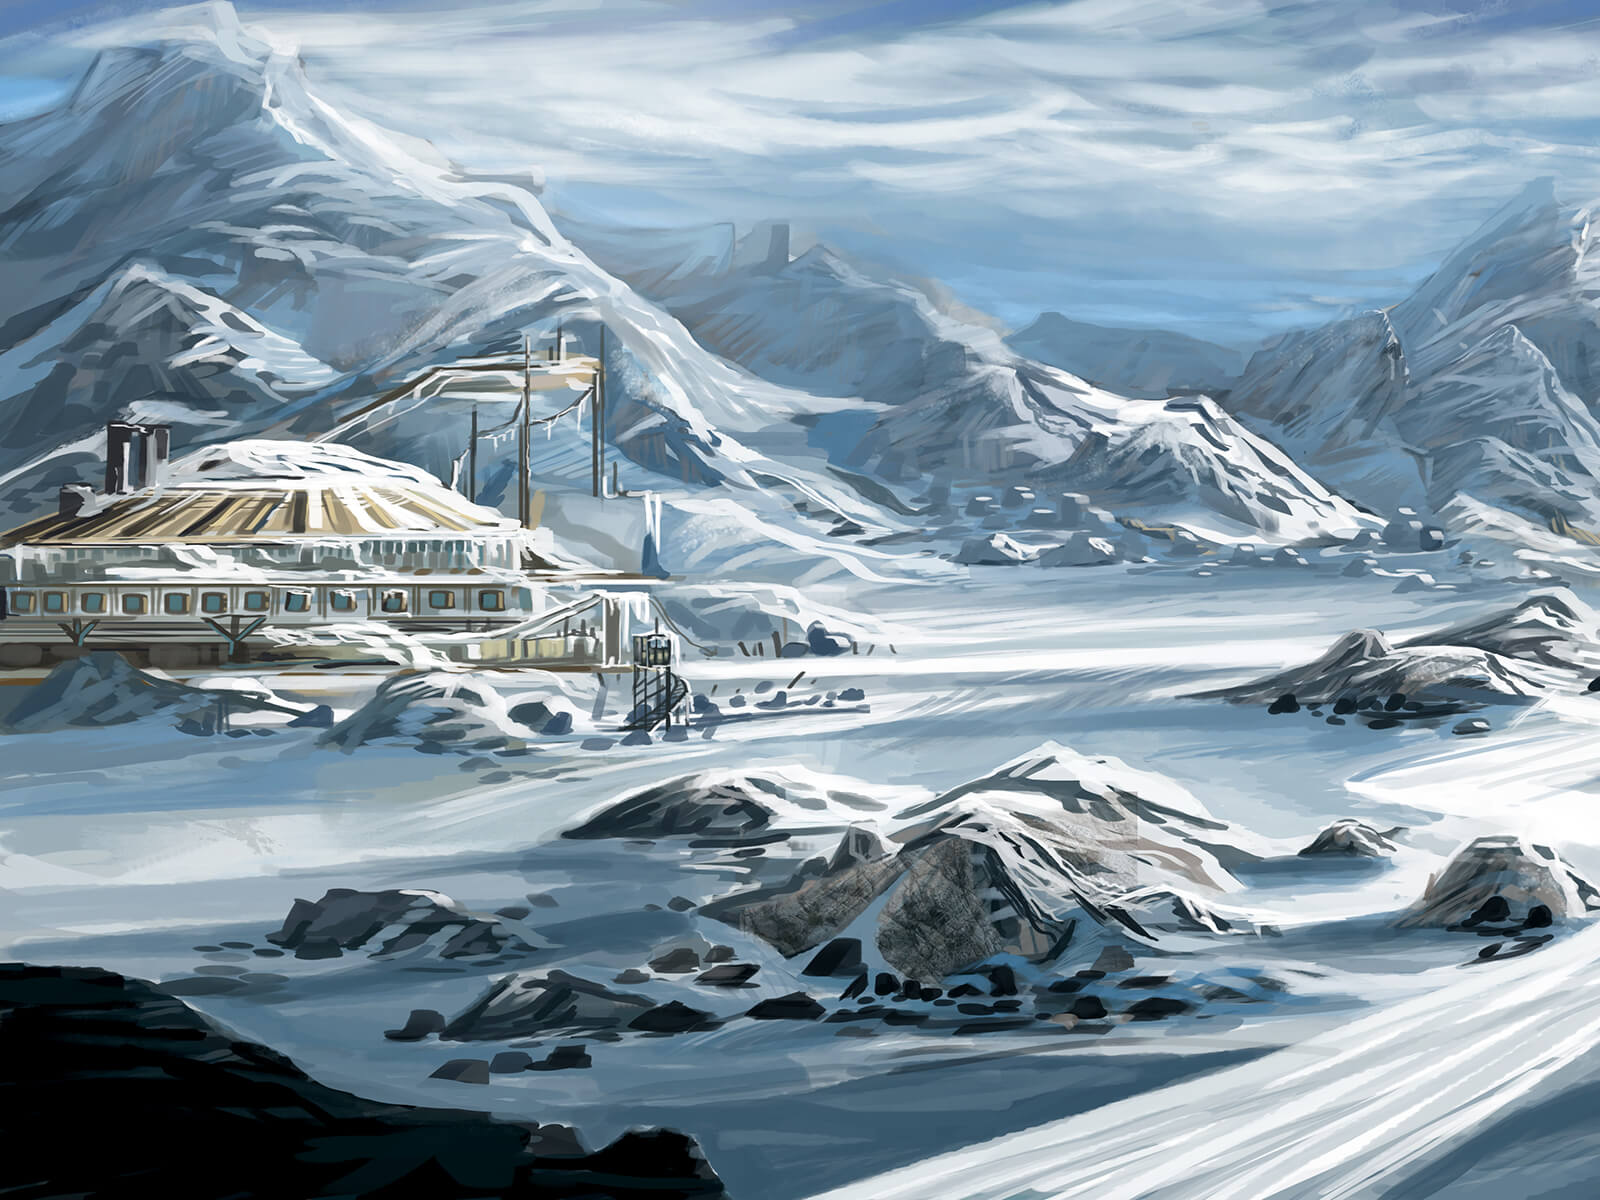 A remote research station and campsite at the base of an icy mountain range, seemingly devoid of activity.